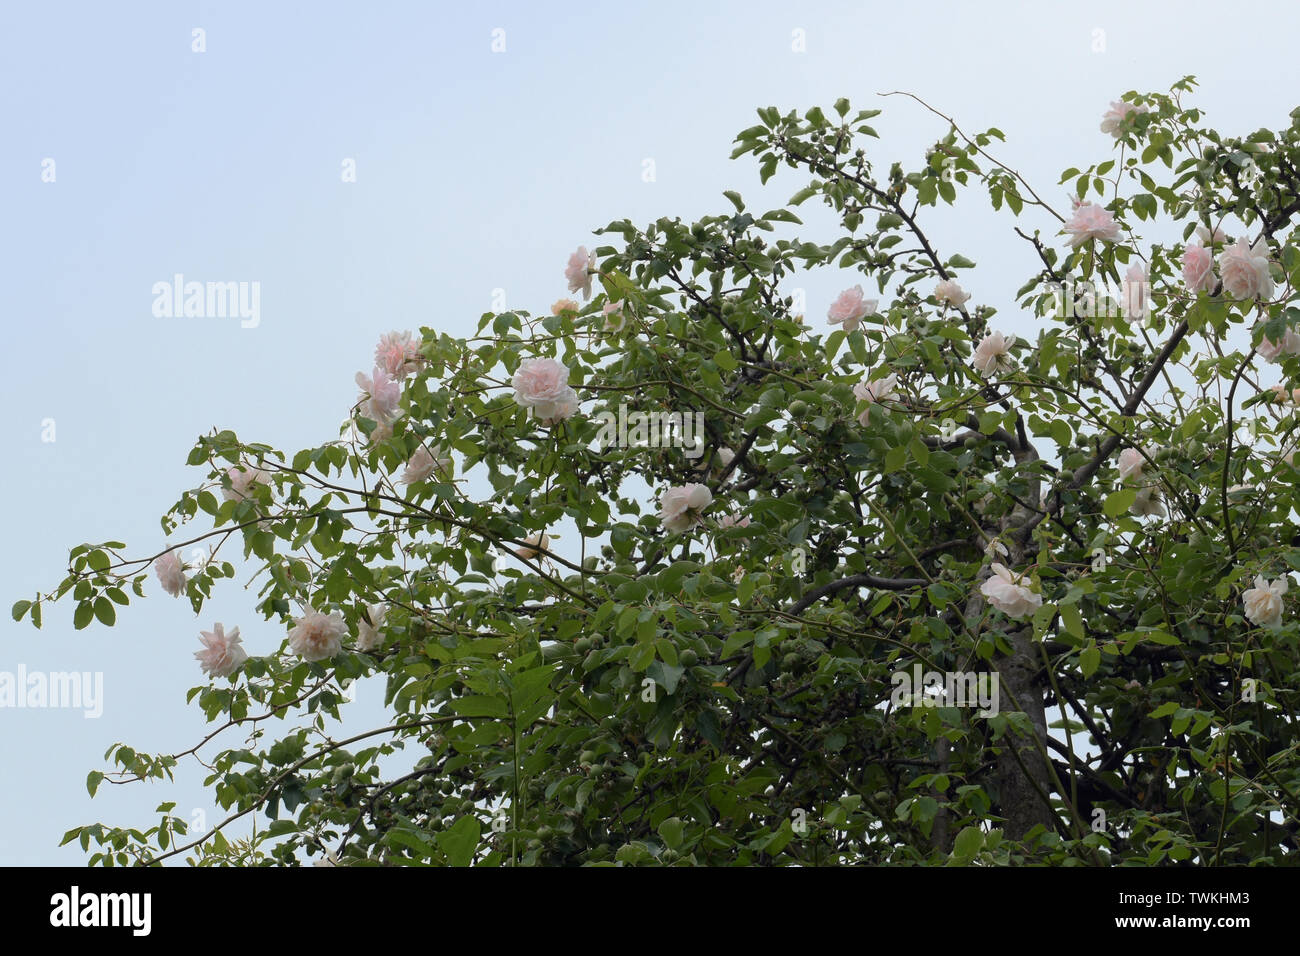 rambling or climbing rose 'Madame Alfred Carriére' with soft pink flowers in an apple tree against a blue sky, old noisette rose bred by schwartz 1875 - Stock Image